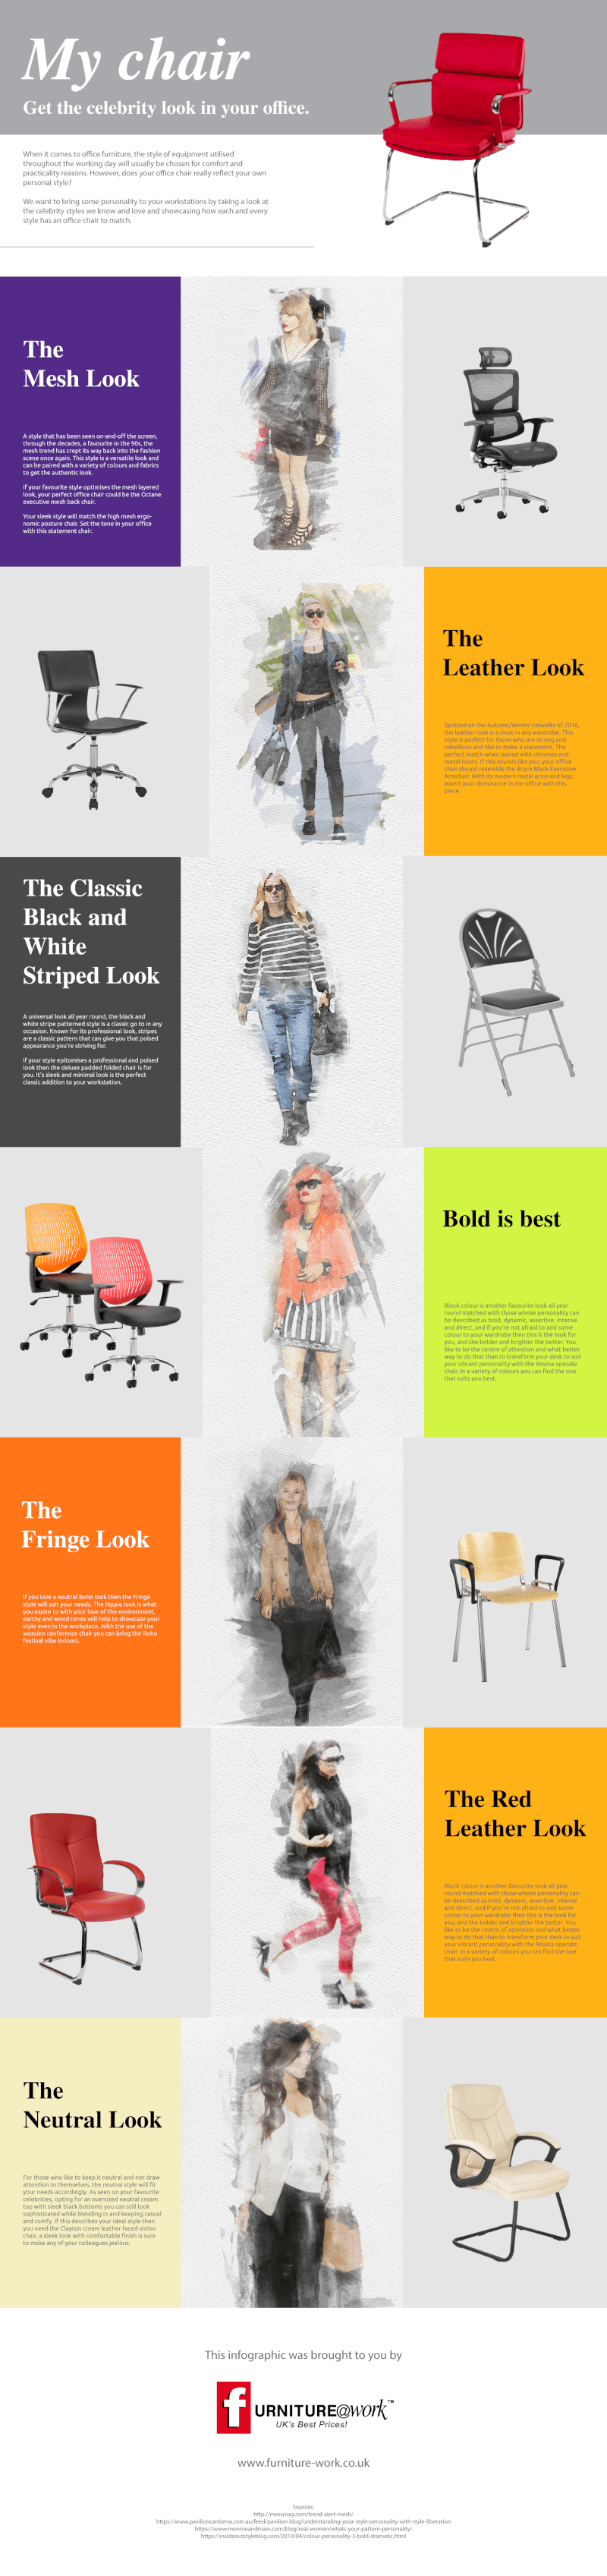 Office Chair Infographic